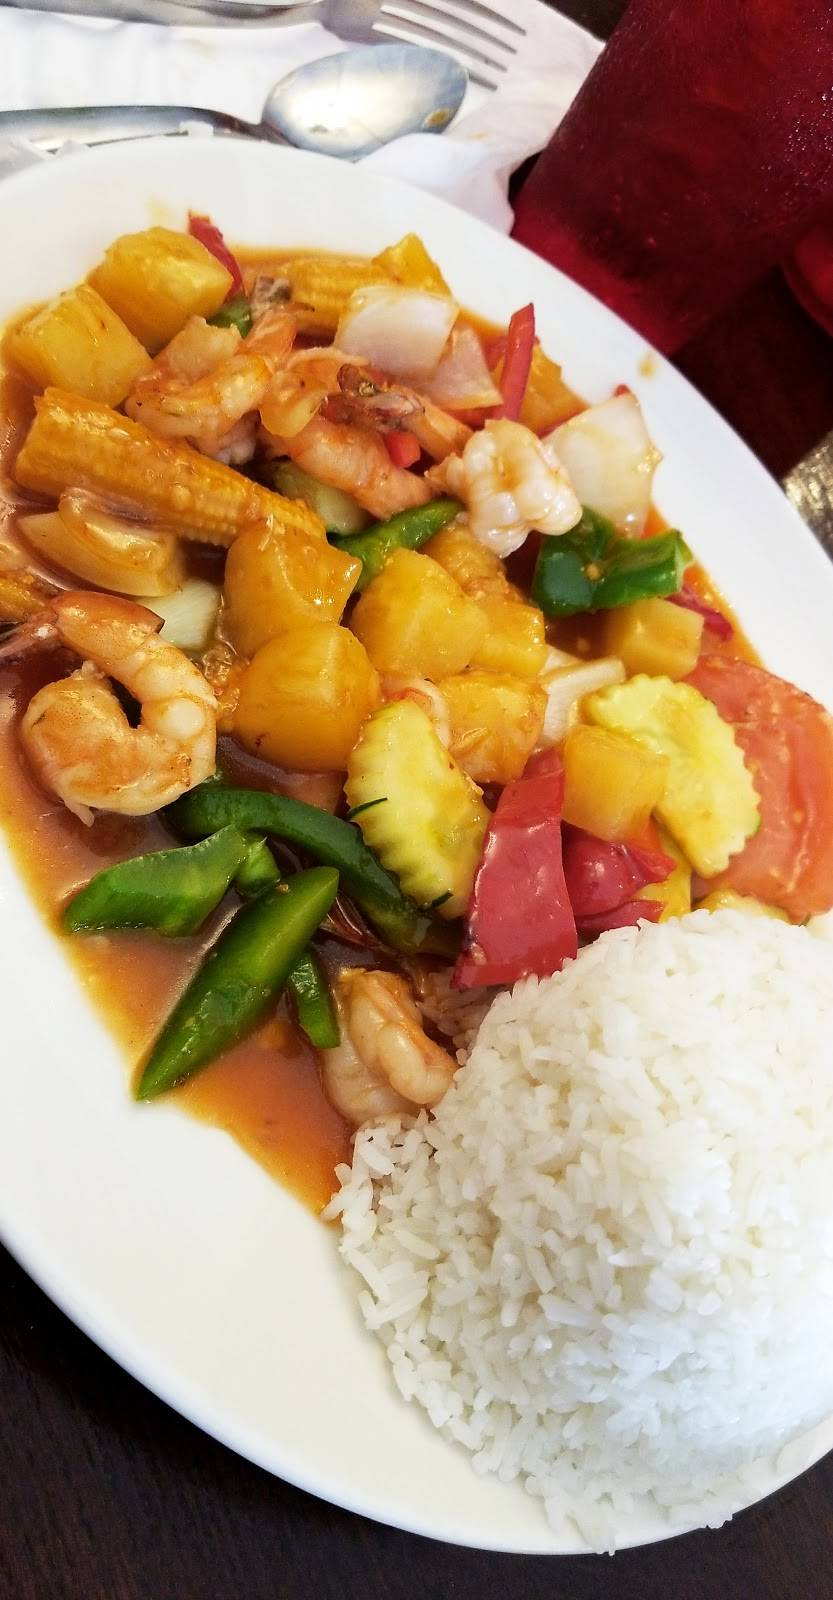 Bangkok Garden | restaurant | 4000 Virginia Beach Blvd, Virginia Beach, VA 23452, USA | 7574985009 OR +1 757-498-5009